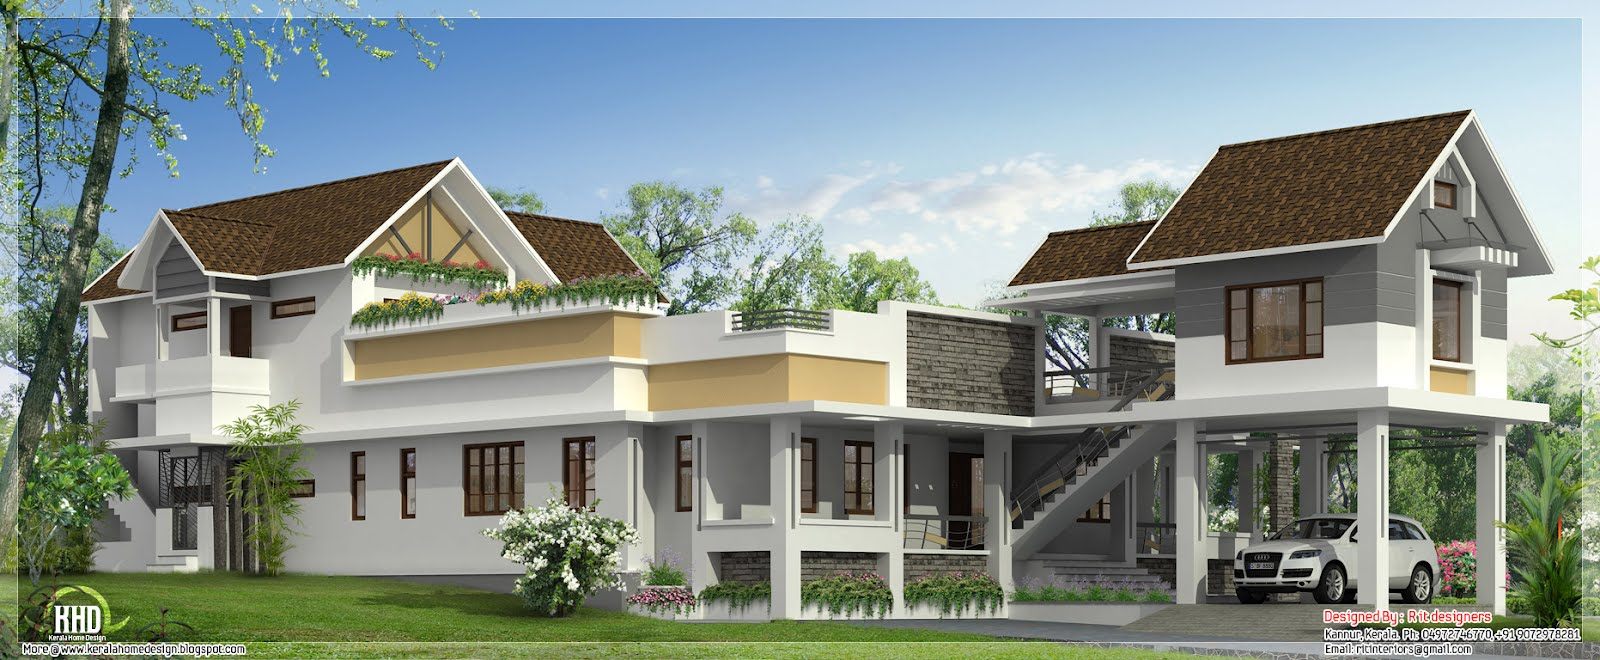 Unusual wide home design home appliance for Unique house plans